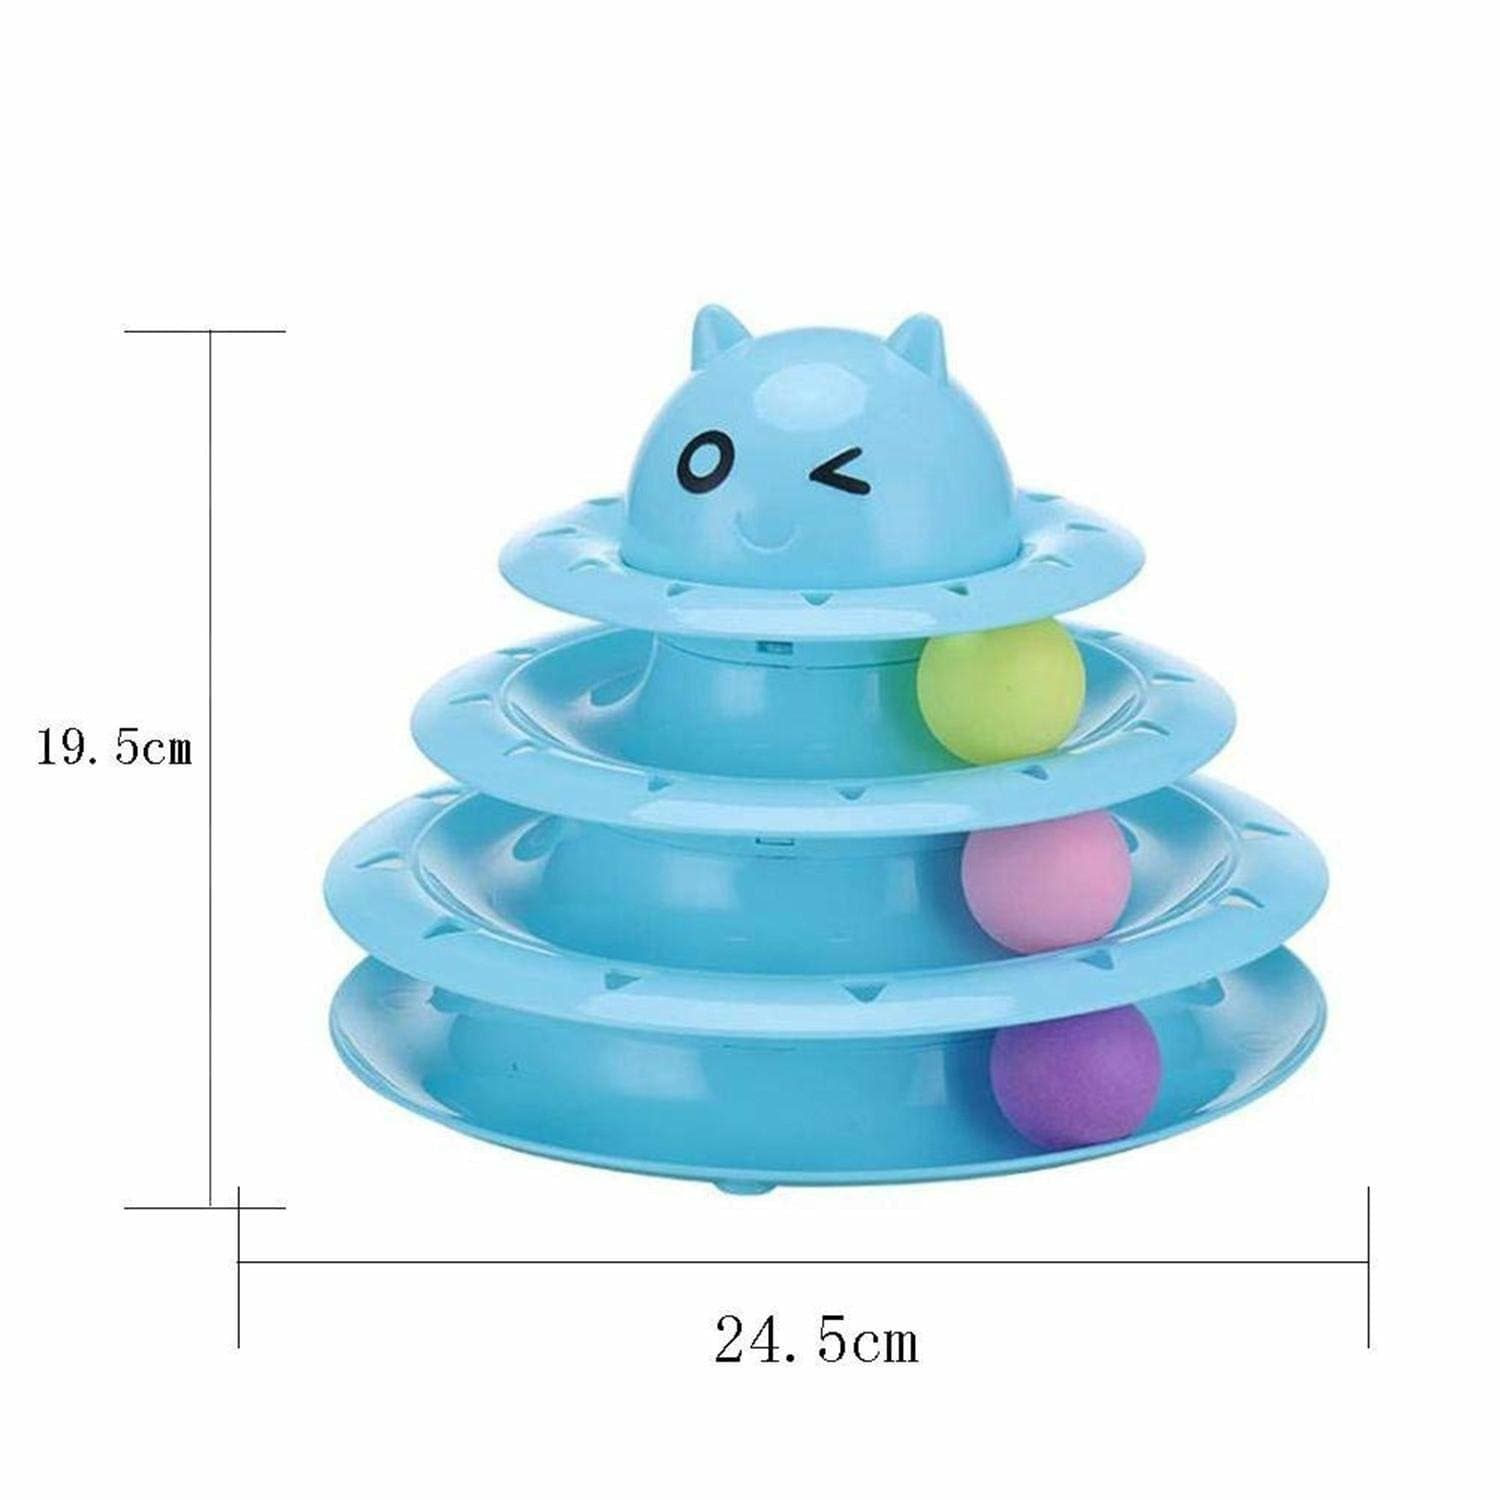 Circular Turntable Cat Toy Snatcher Online Shopping South Africa